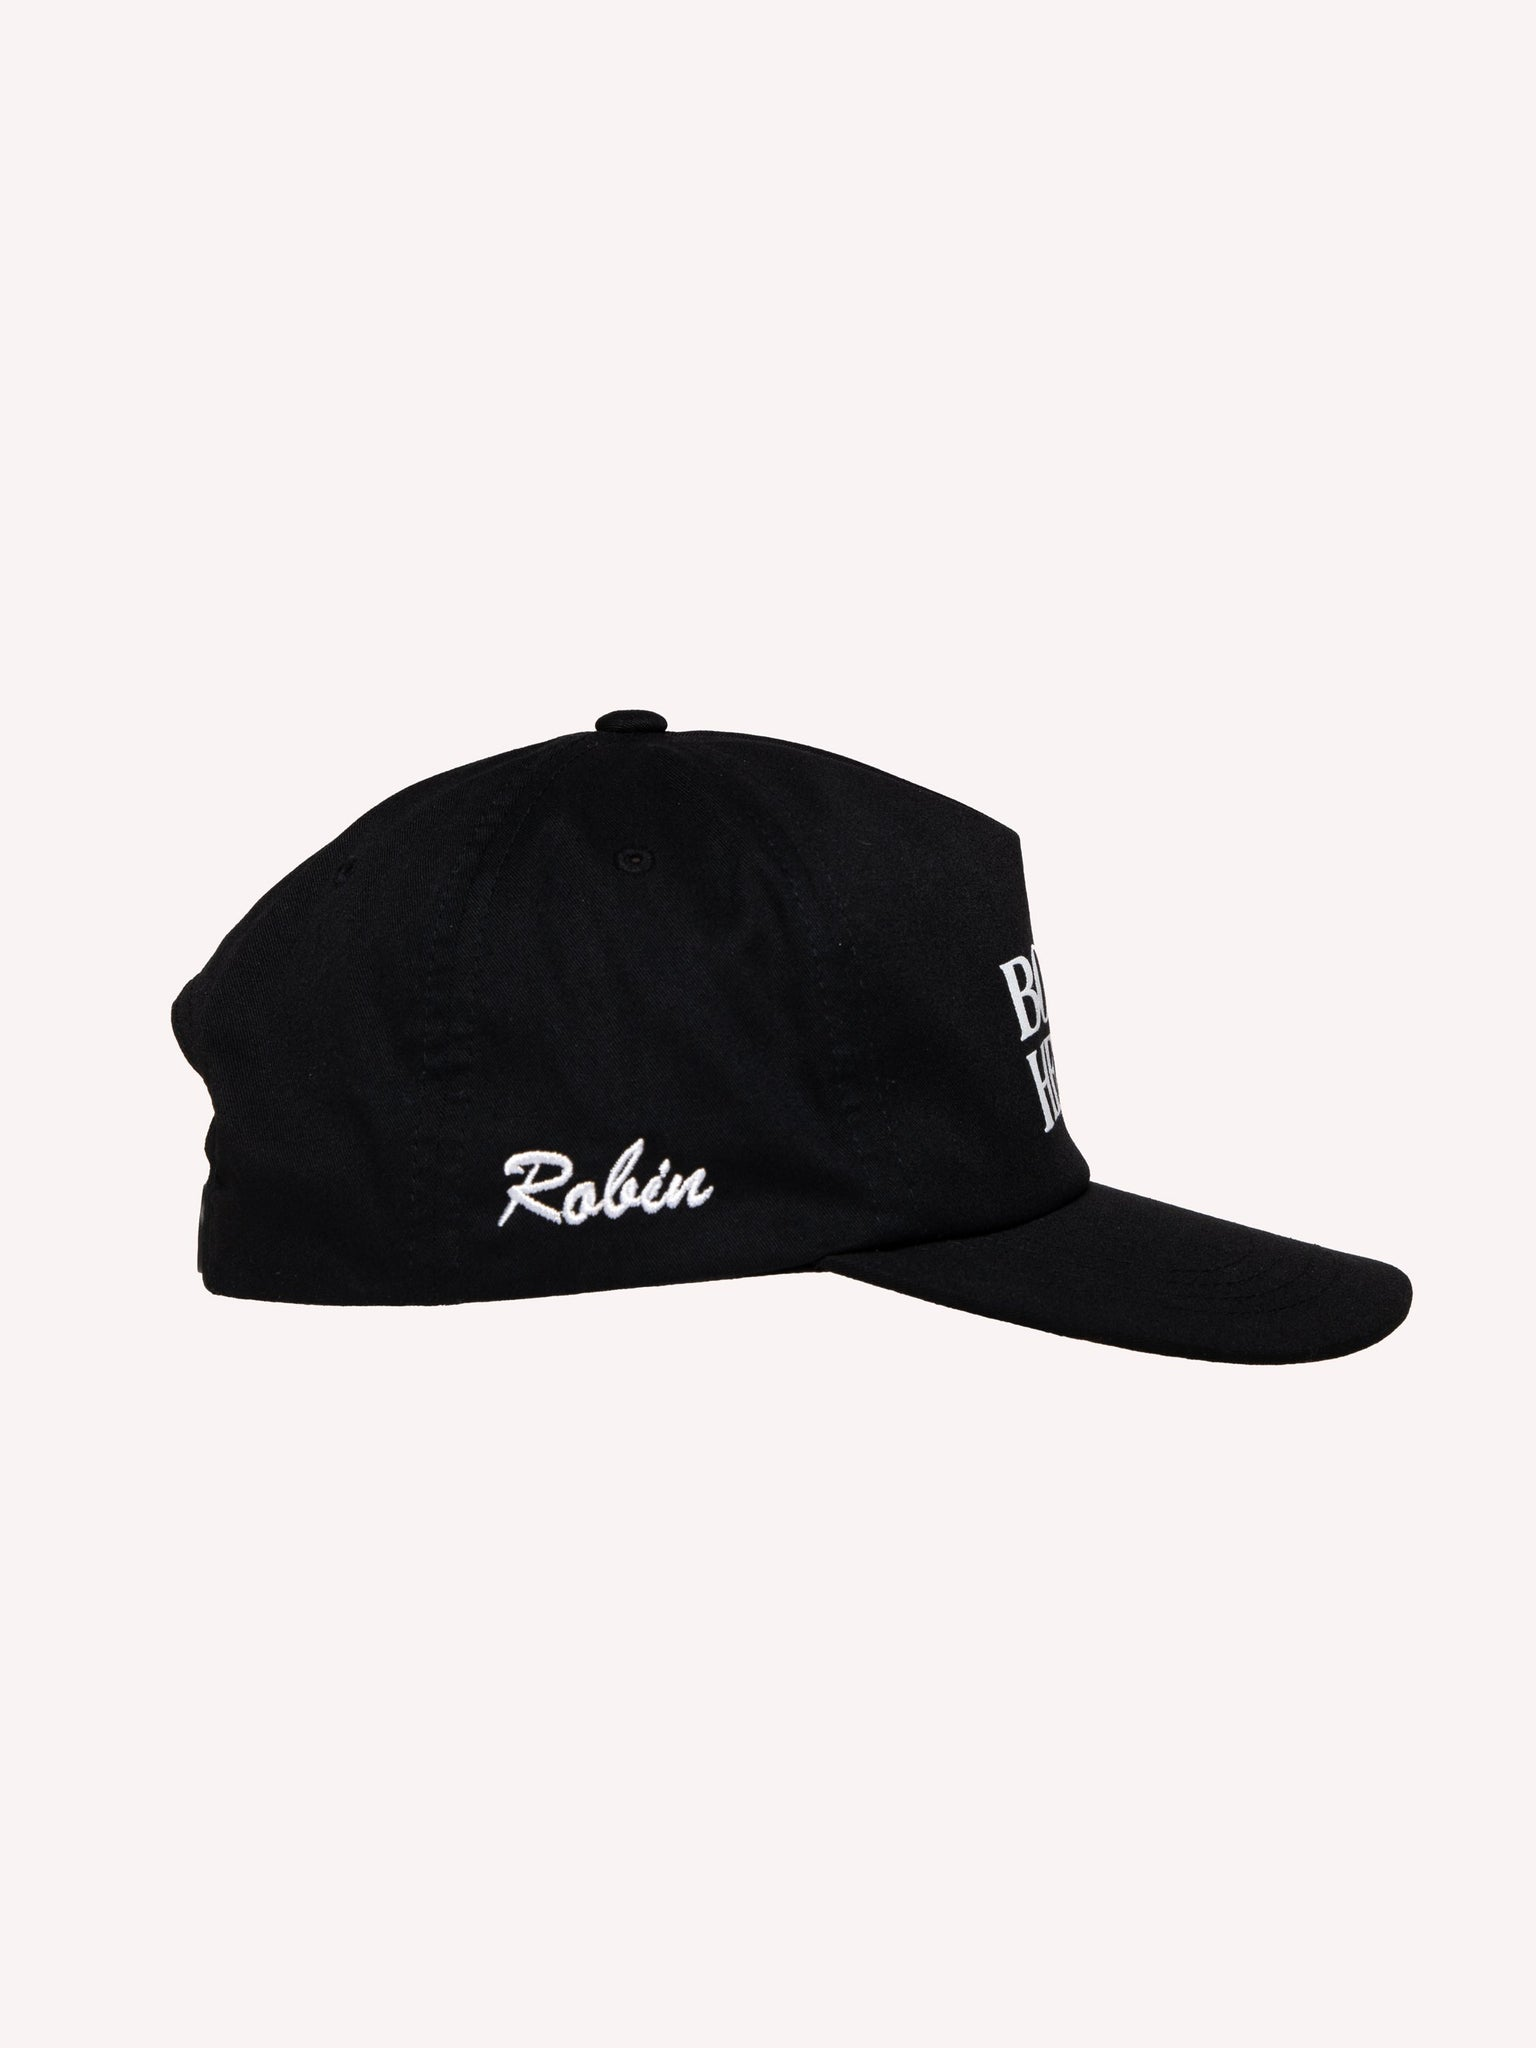 body-heat-robin-cap